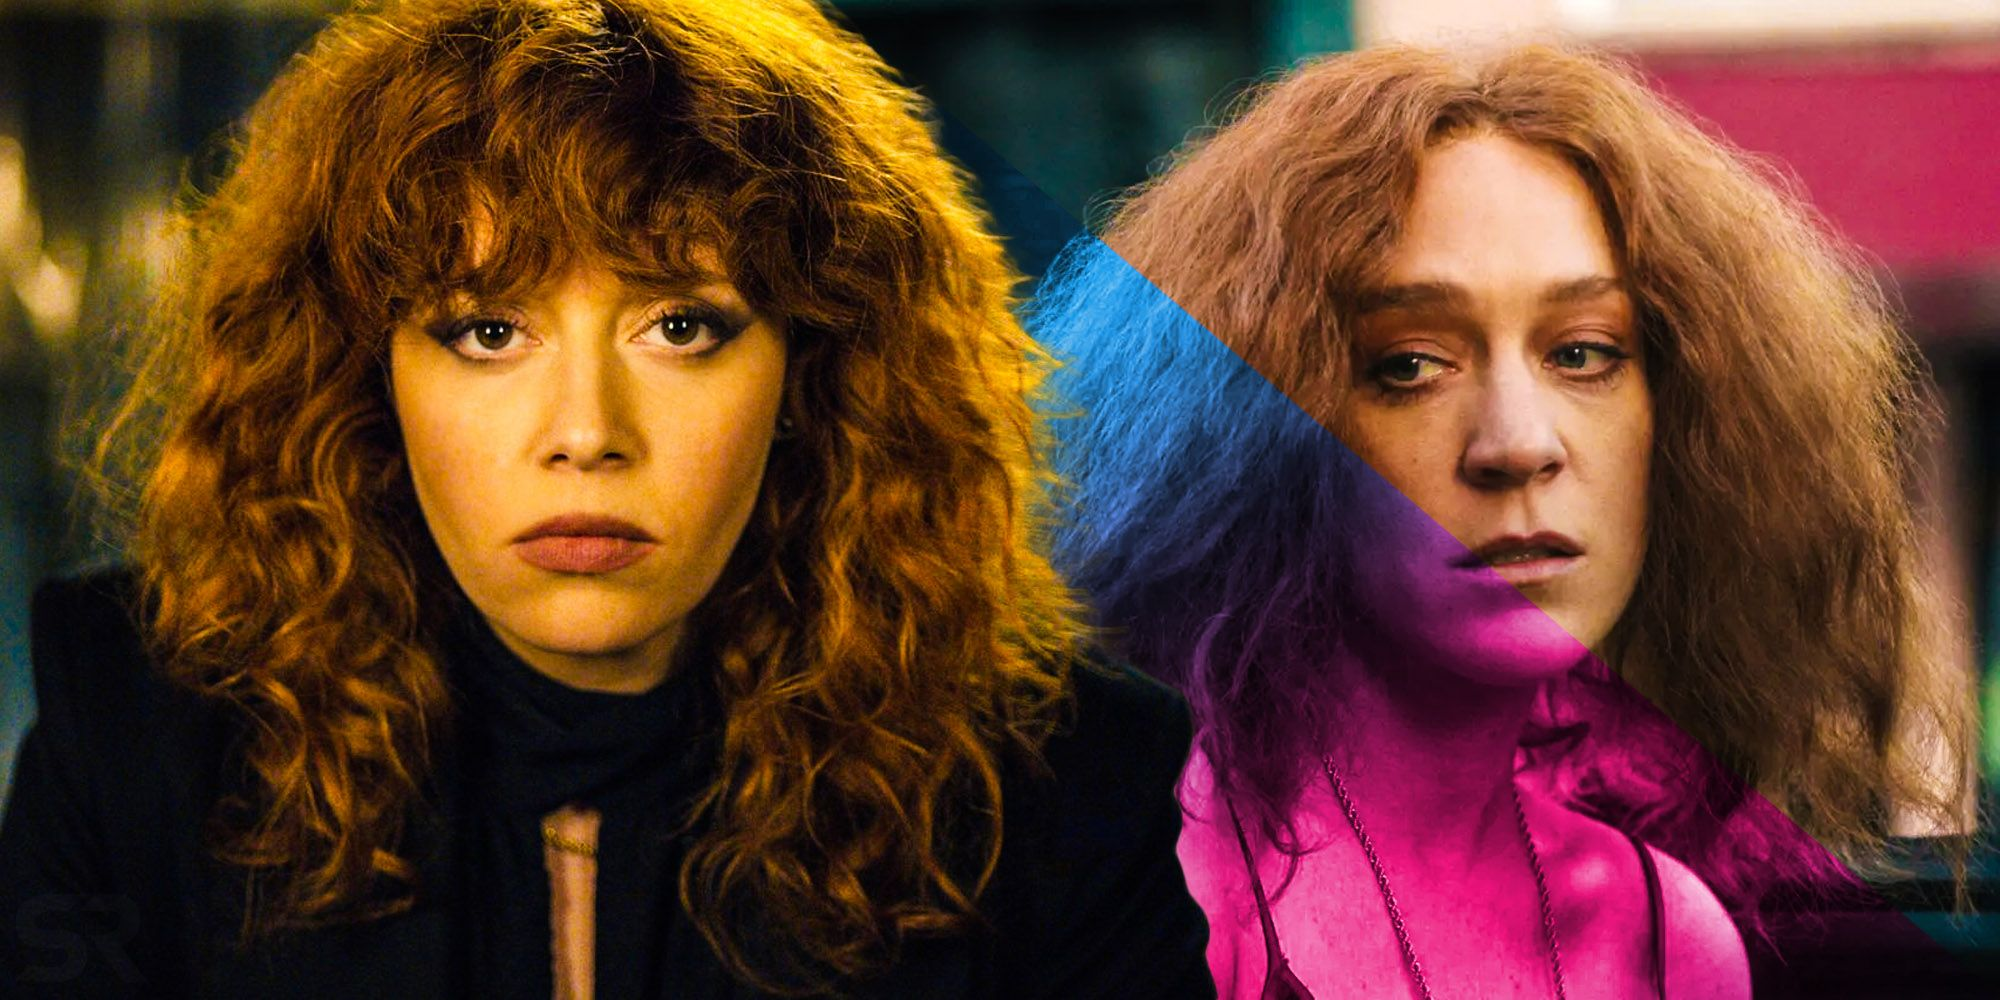 Russian Doll Season 2 Casting Hints More Time With The Troubled Vulvokov Family